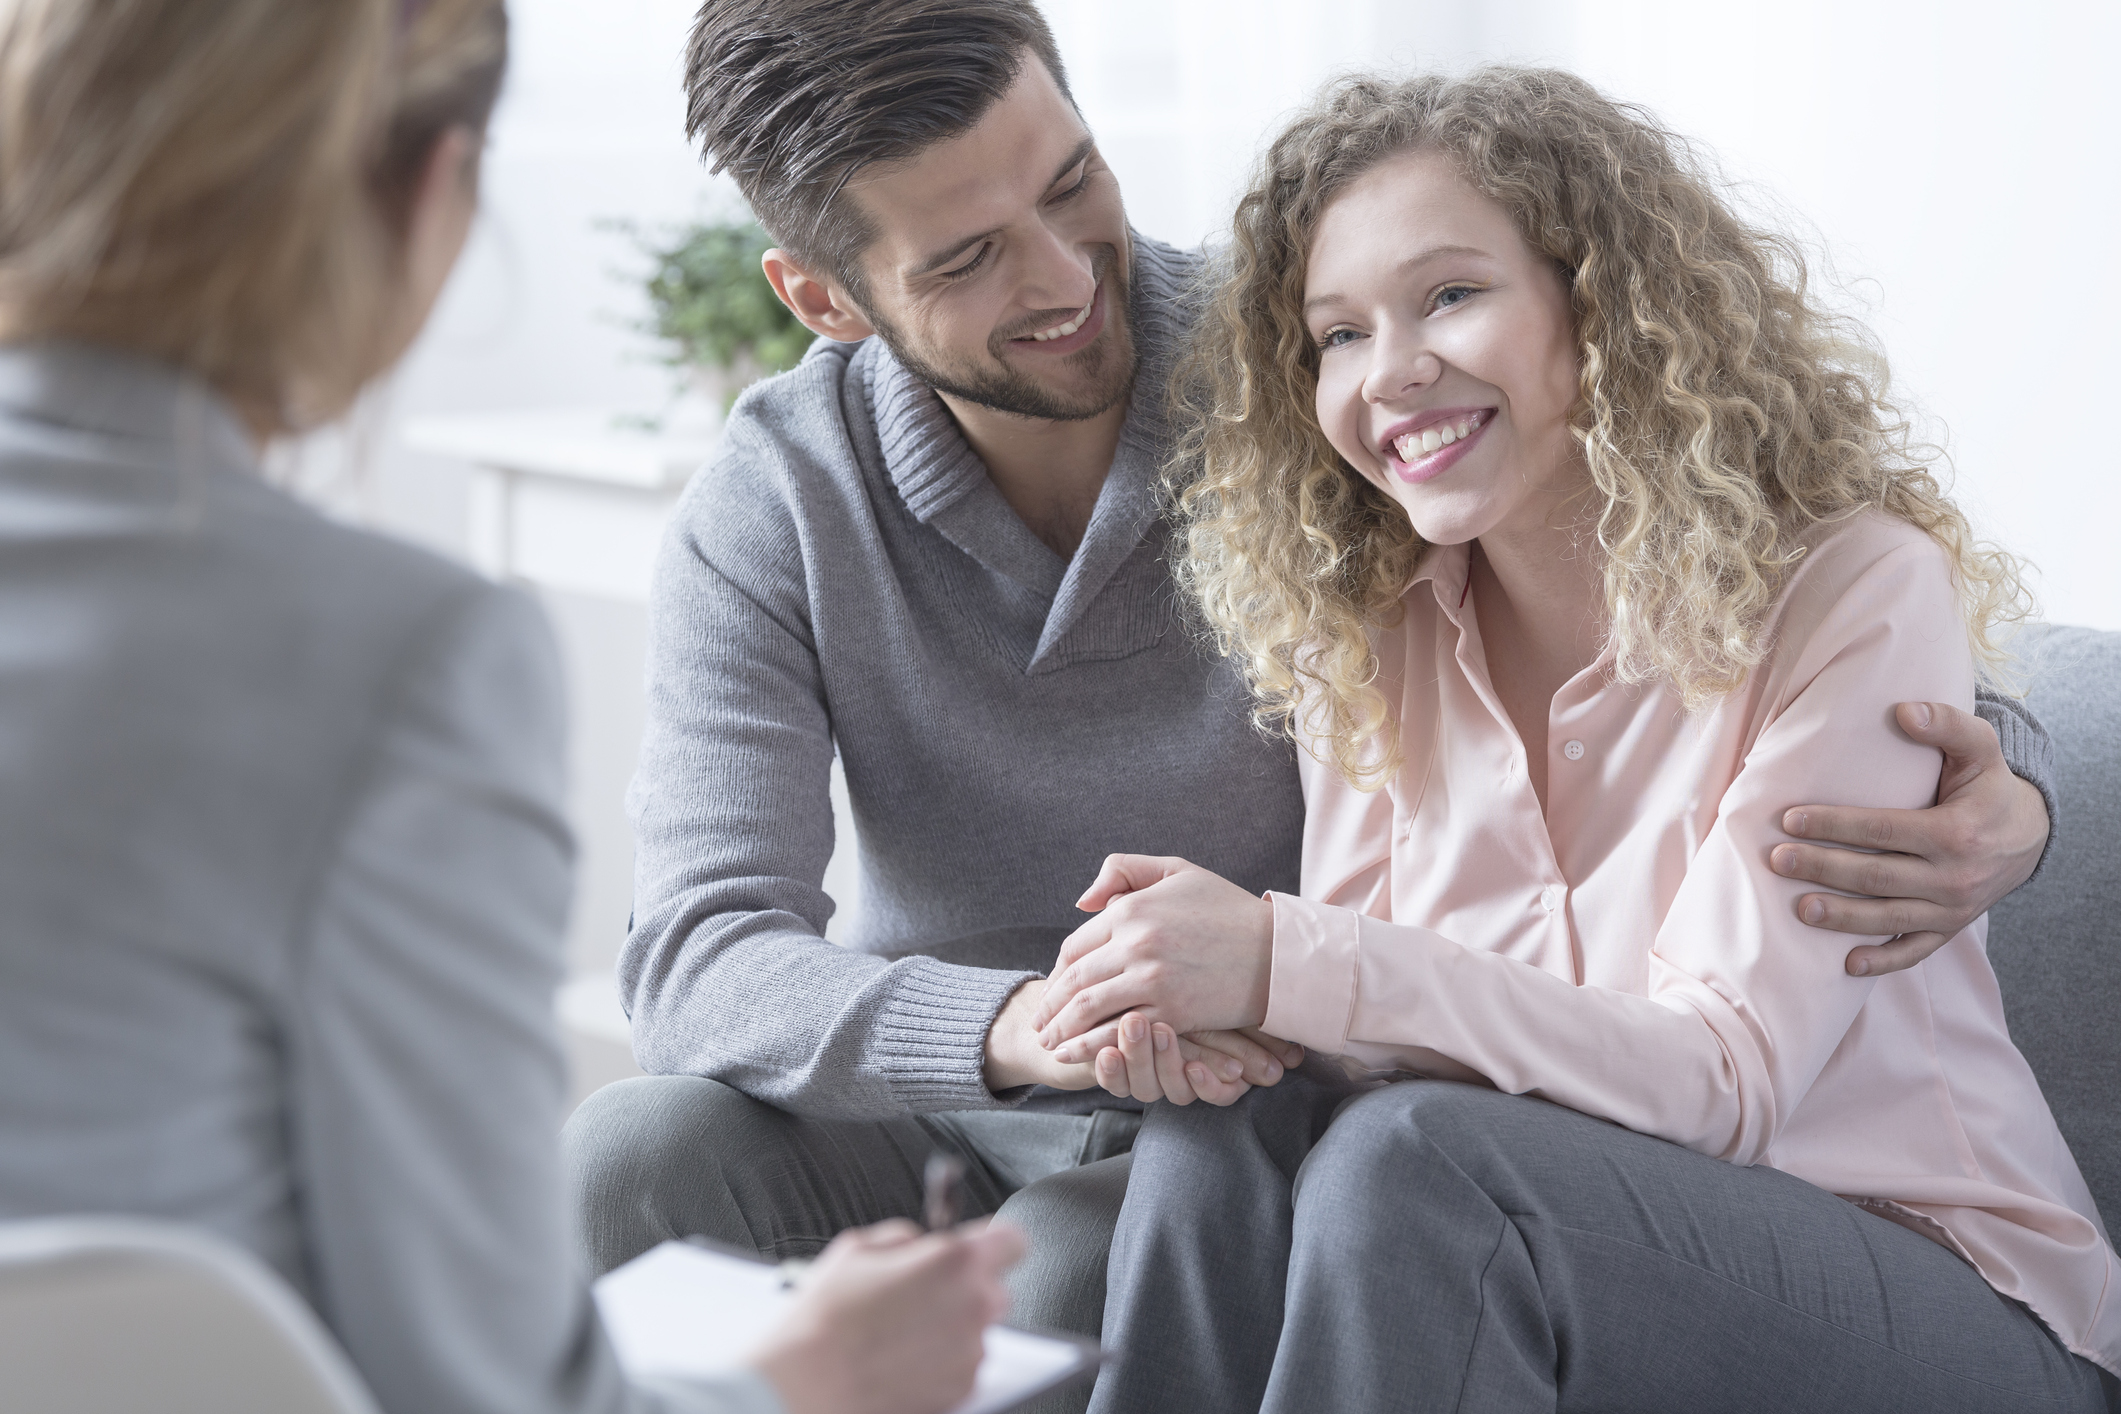 Our East Bay Sex Therapy Program is designed to help you meet your sexual & intimacy goals. - Clinical sexologists facilitate clients' sexual growth by helping them to identify their sexual goals and by offering education, resources, tools and techniques to help them meet those goals and ultimately manage their own sexual growth